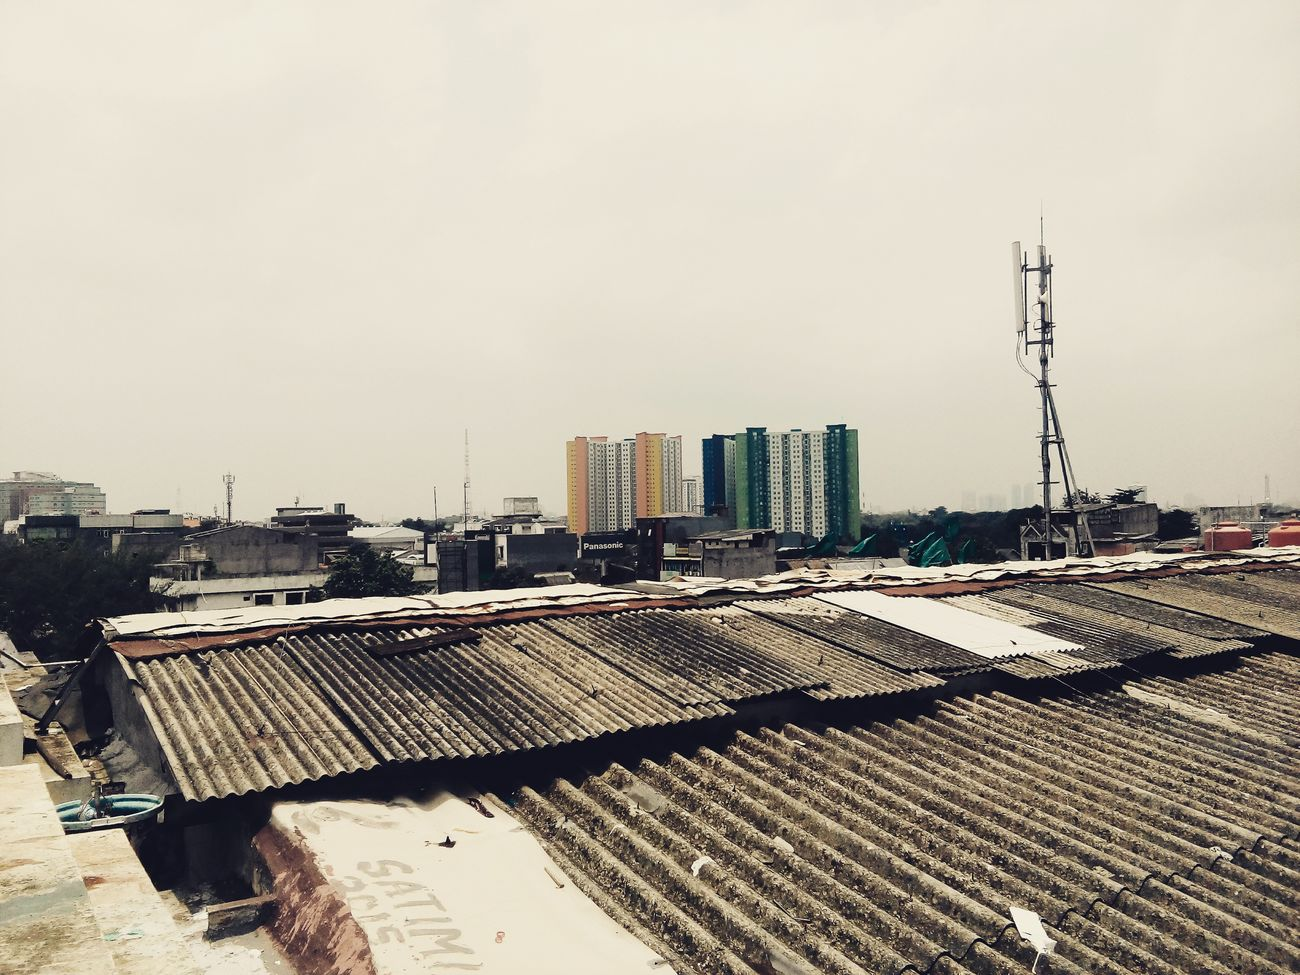 Rooftop and Building Jakarta Exploreindonesia Explorejakarta Goodview Bestangle Goodidea